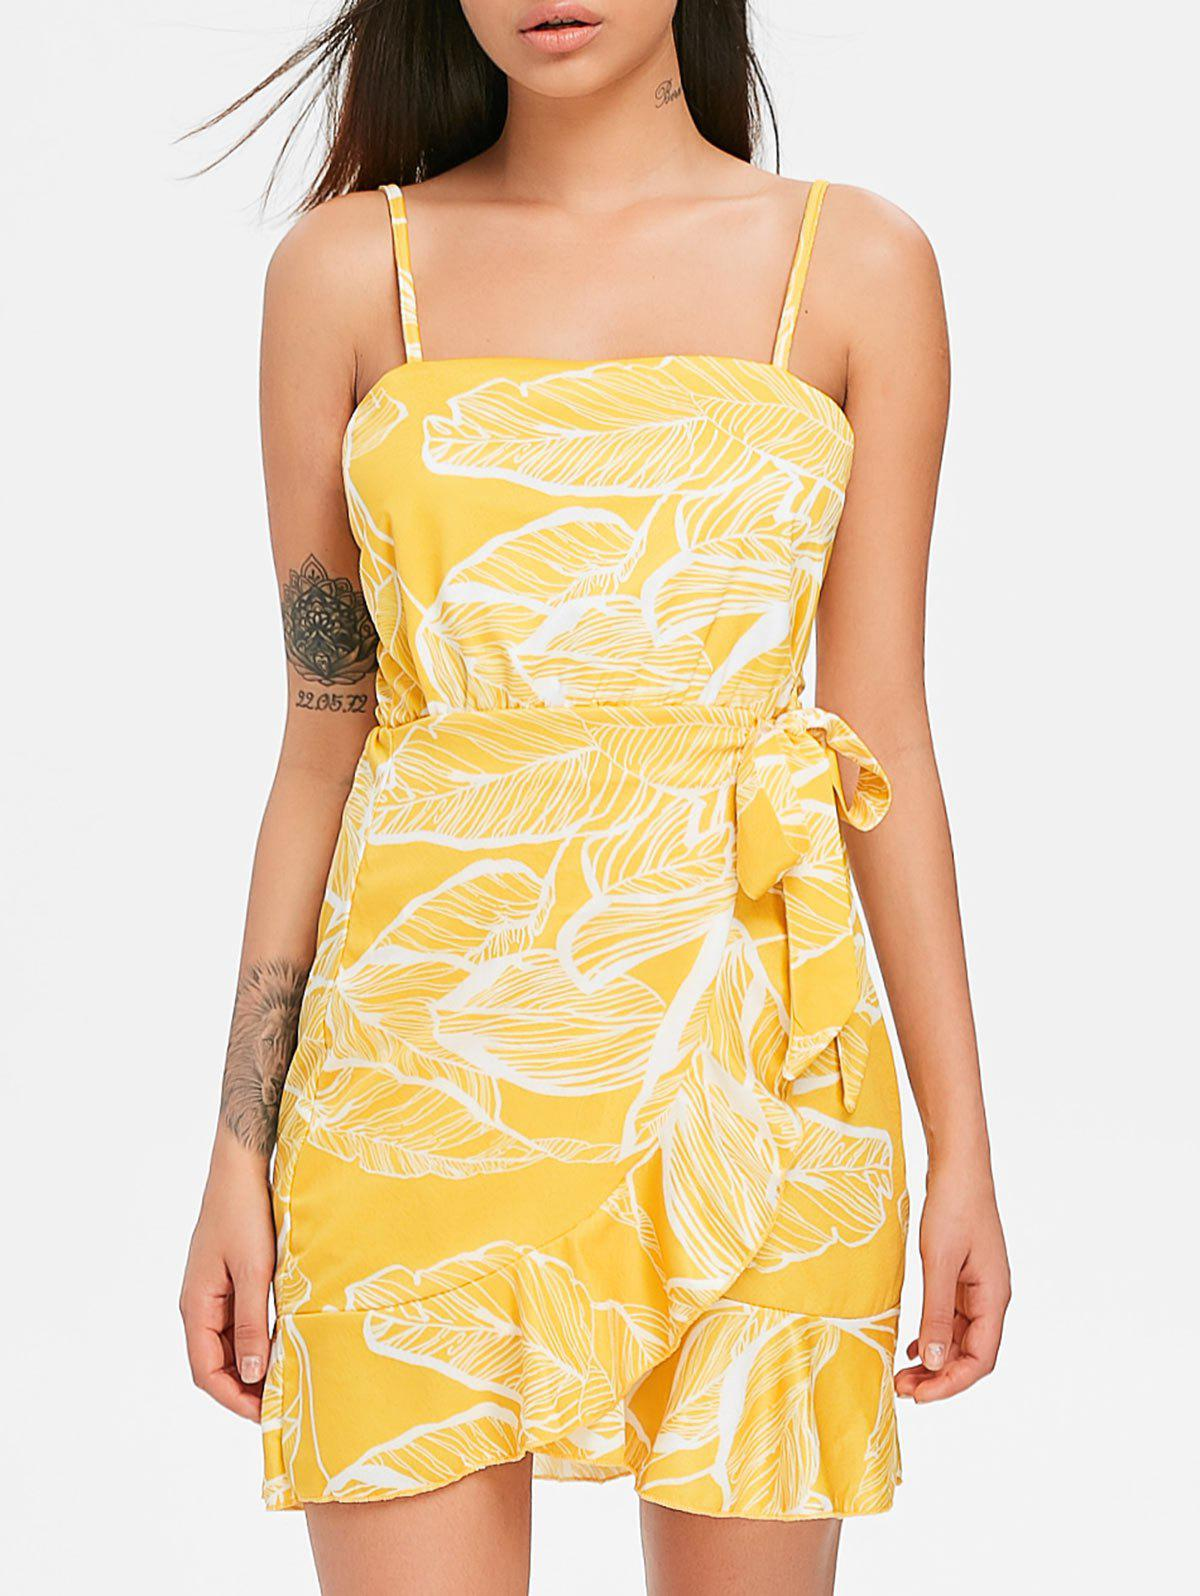 Hot Print Ruffle Spaghetti Strap Dress